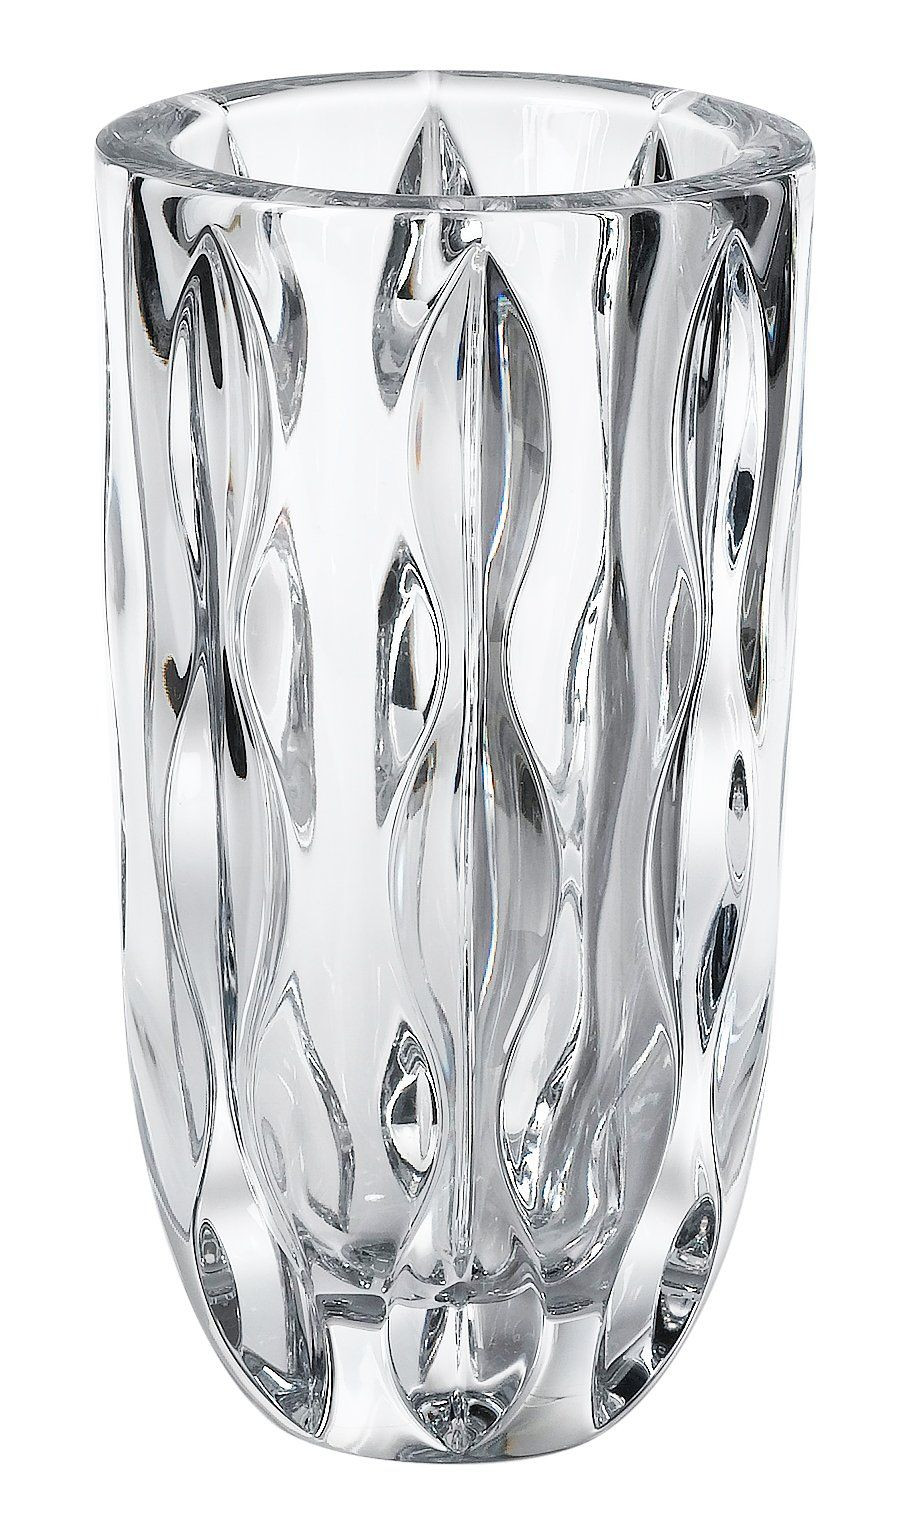 Tall Cylinder Vases Set Of 3 Of Reed Barton Crystal Equinox 10 Inch Vase Design Incorporates Deep Pertaining to Reed Barton Crystal Equinox 10 Inch Vase Design Incorporates Deep Flowing Cuts